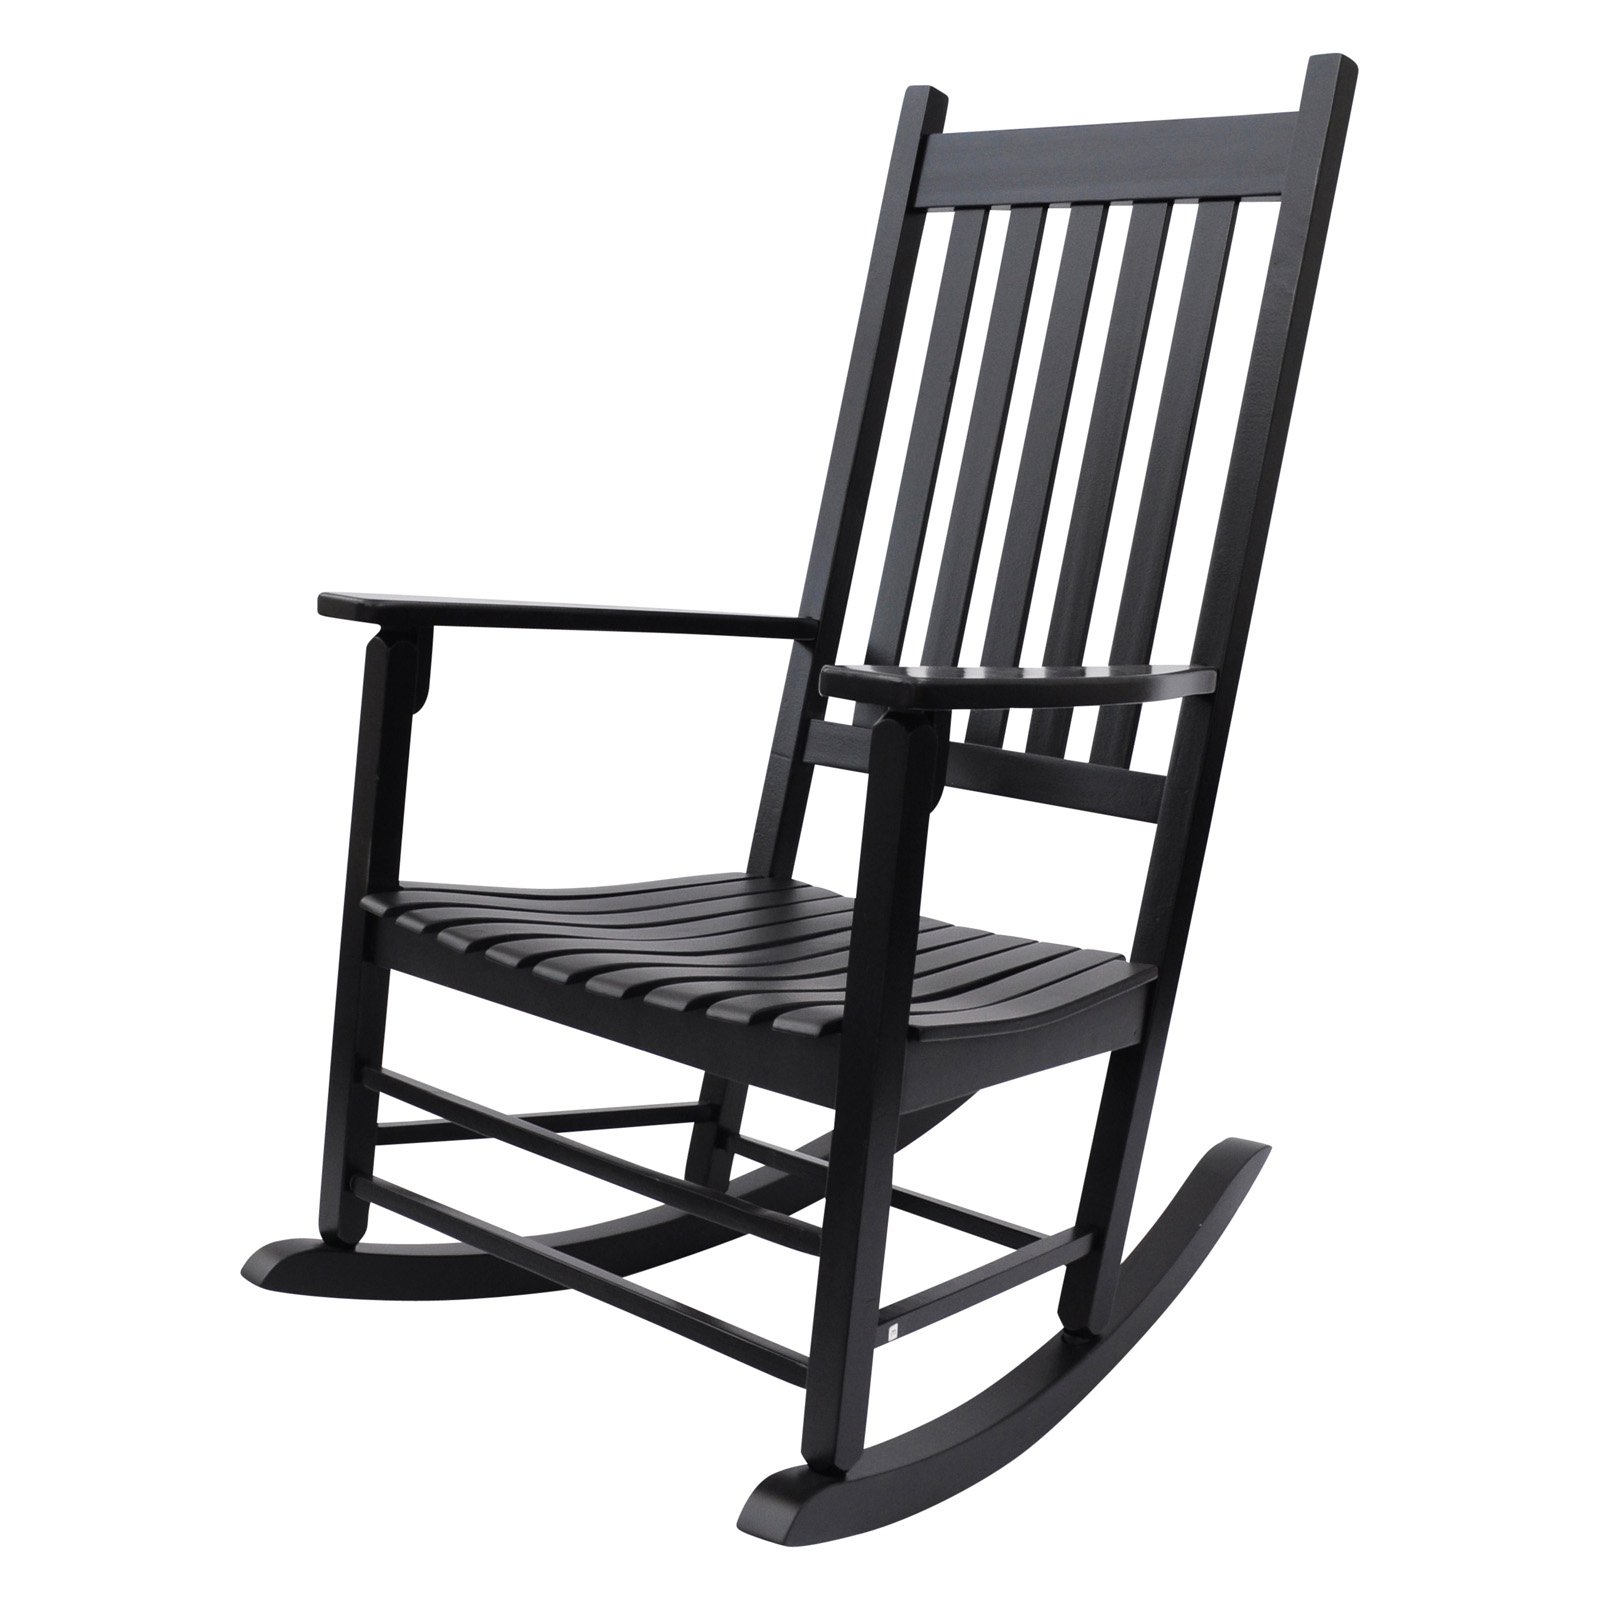 Shine Company Vermont Porch Rocker - Black